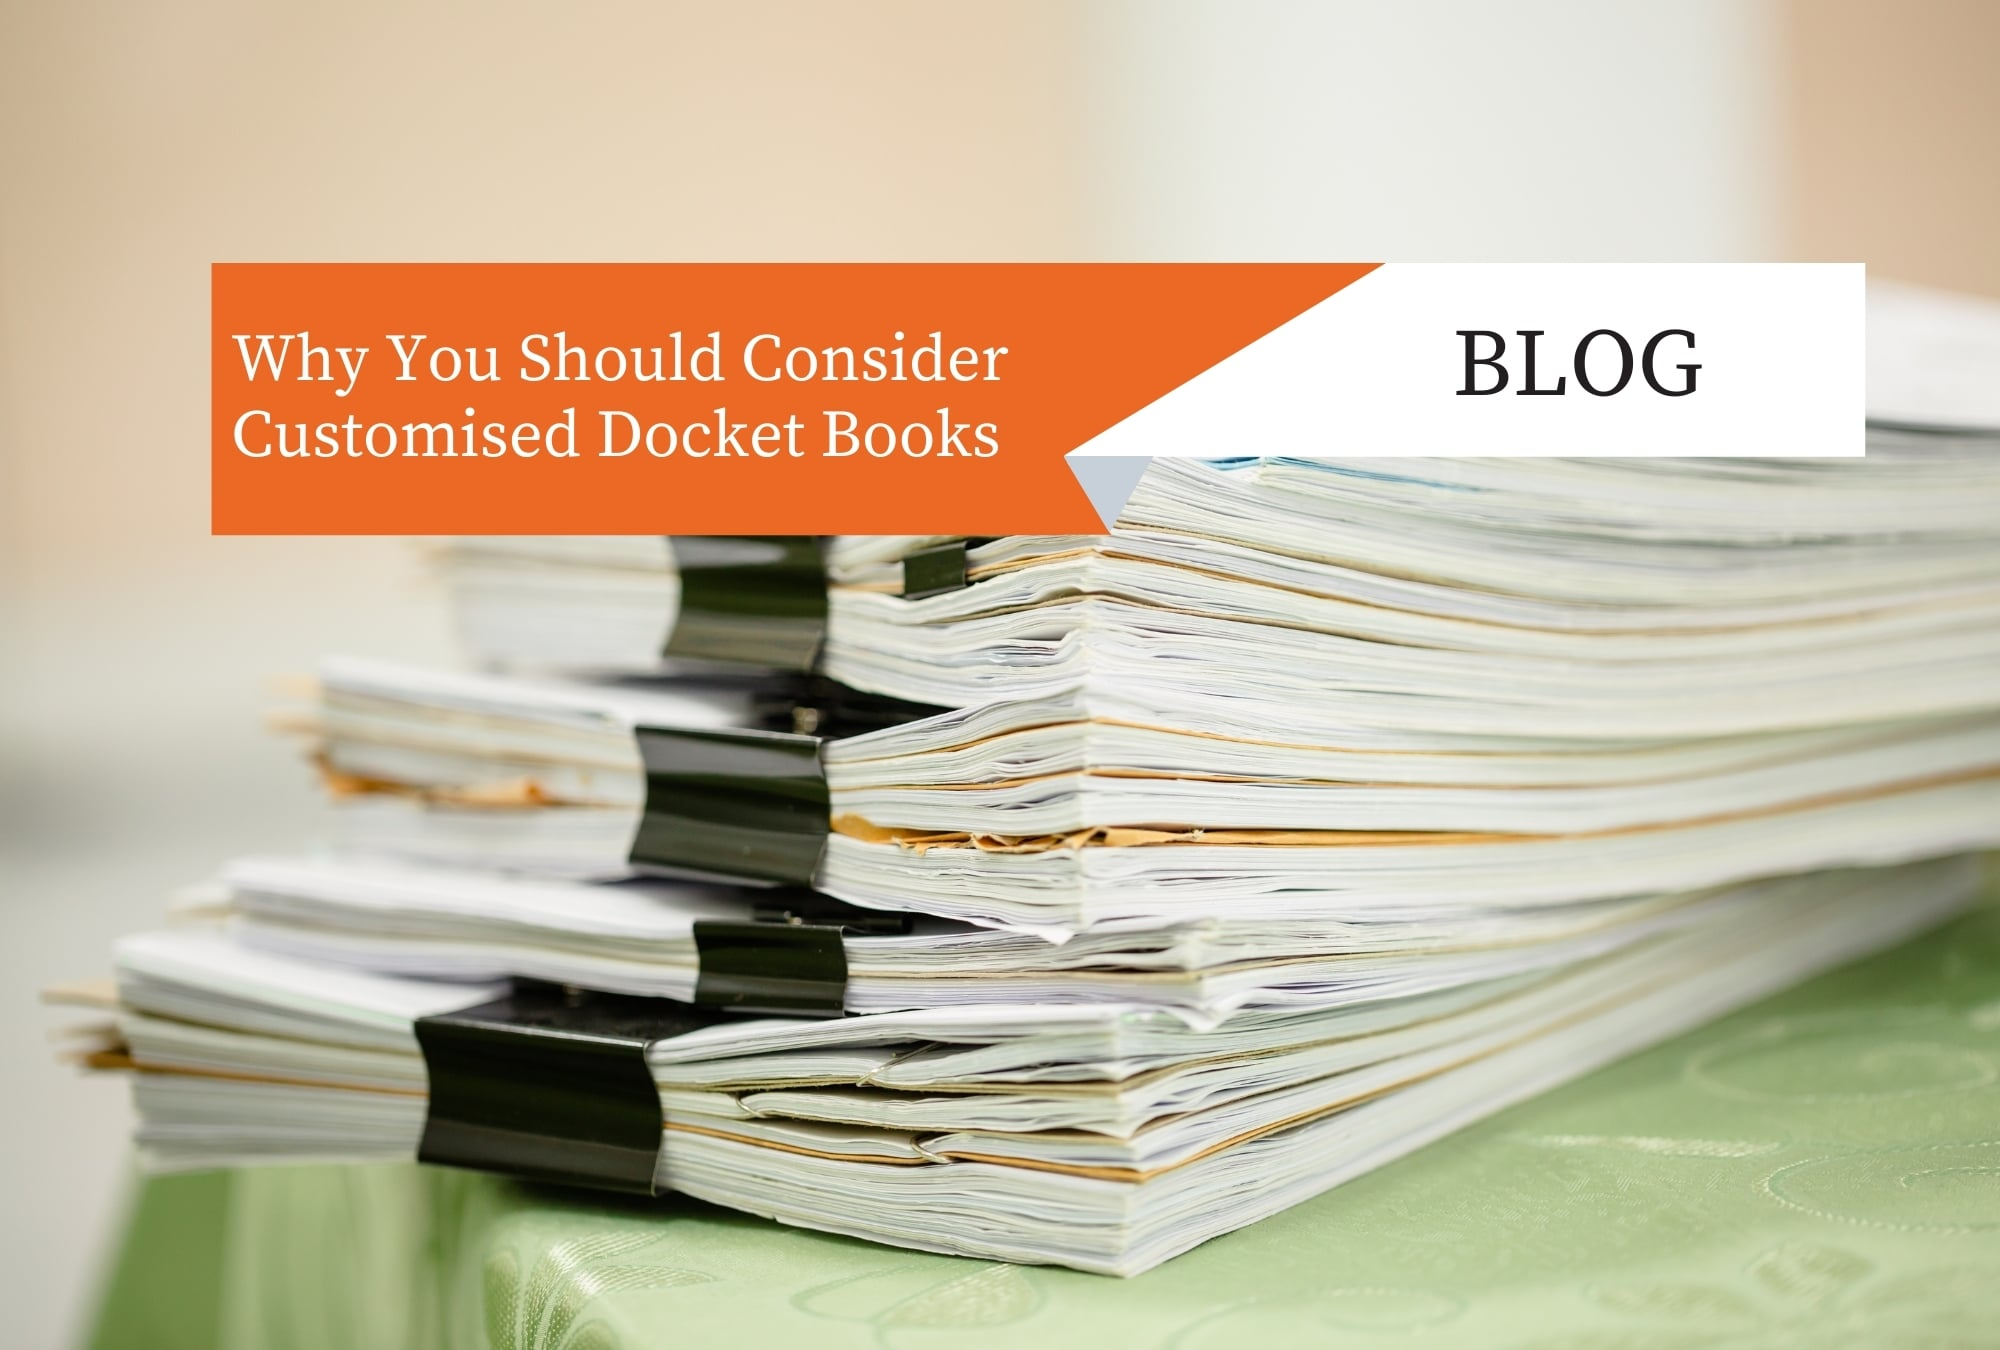 Why You Should Consider Customised Docket Books